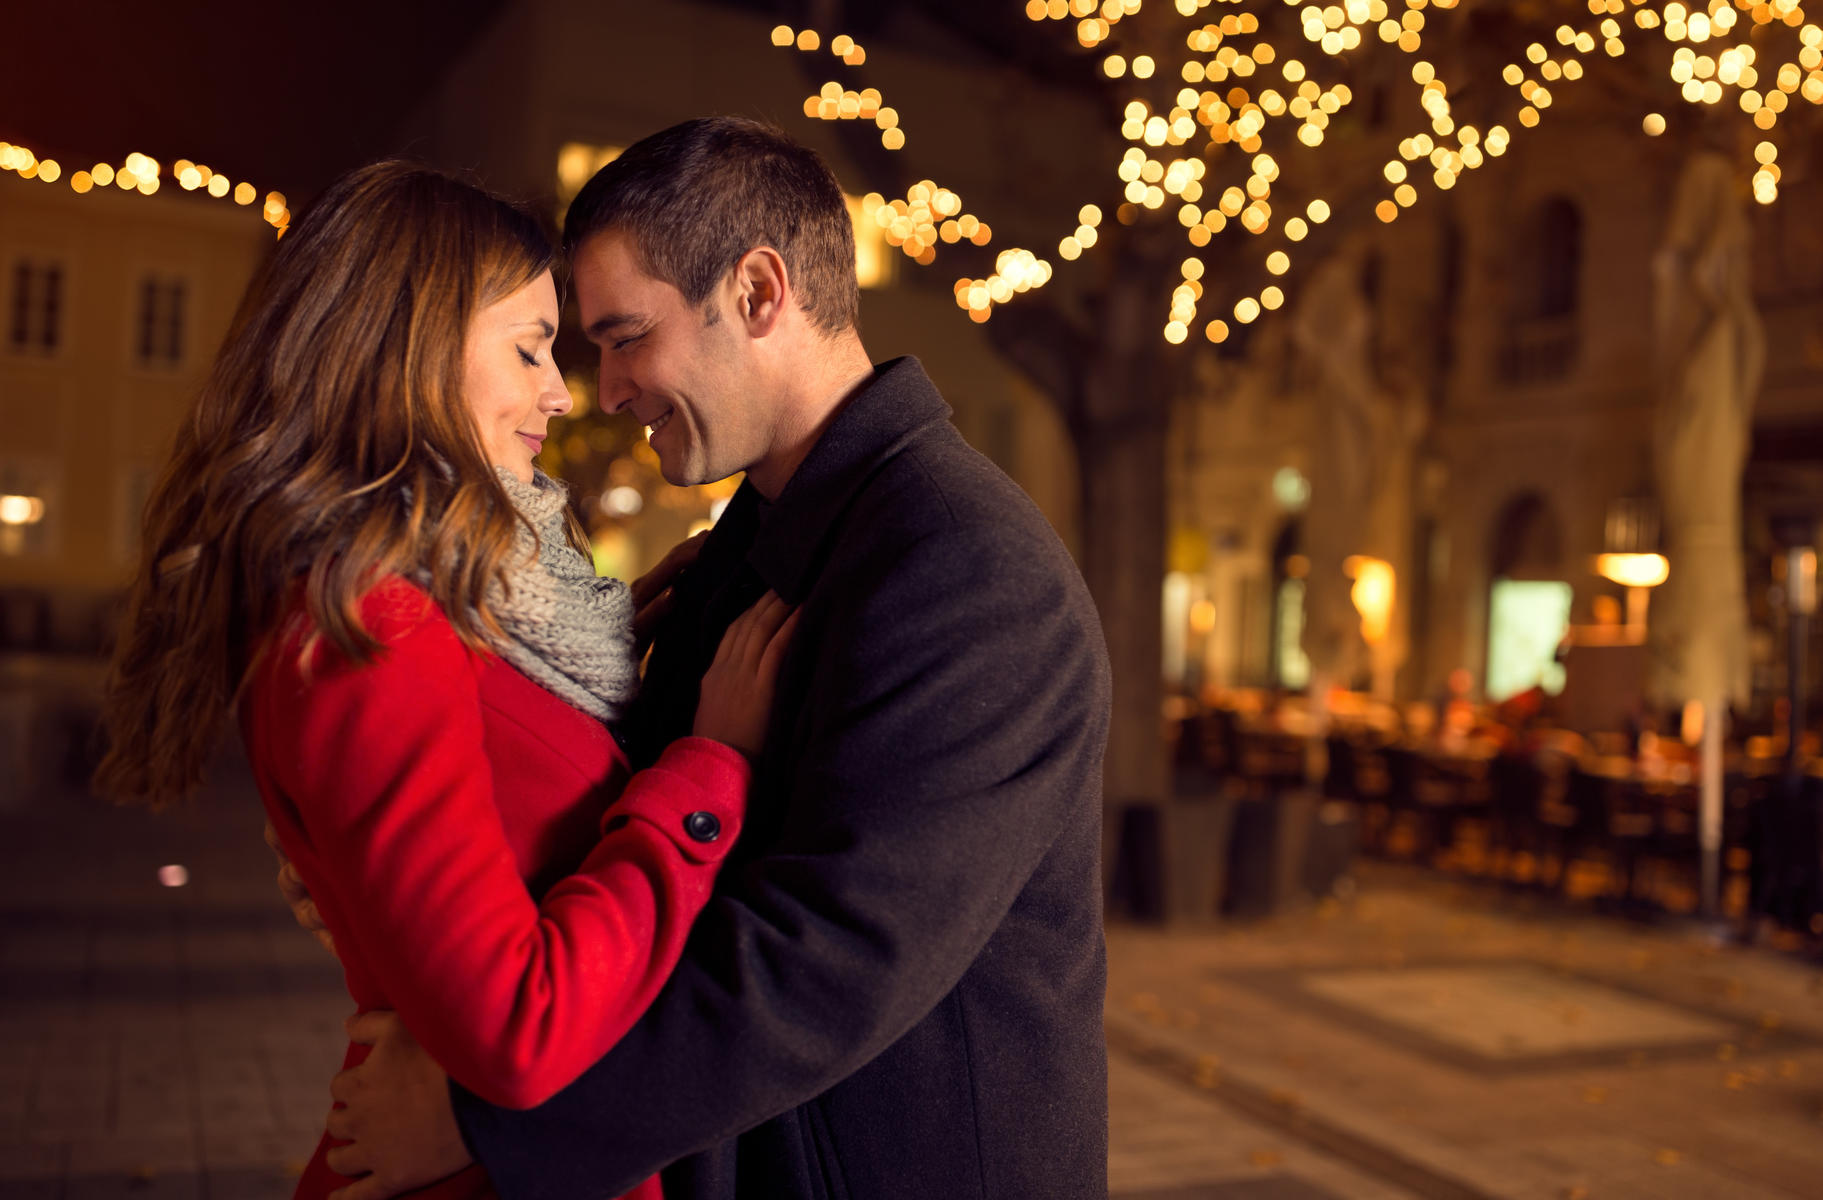 Date Night Happy Couple Embrace Outdoors Twinkle Lights